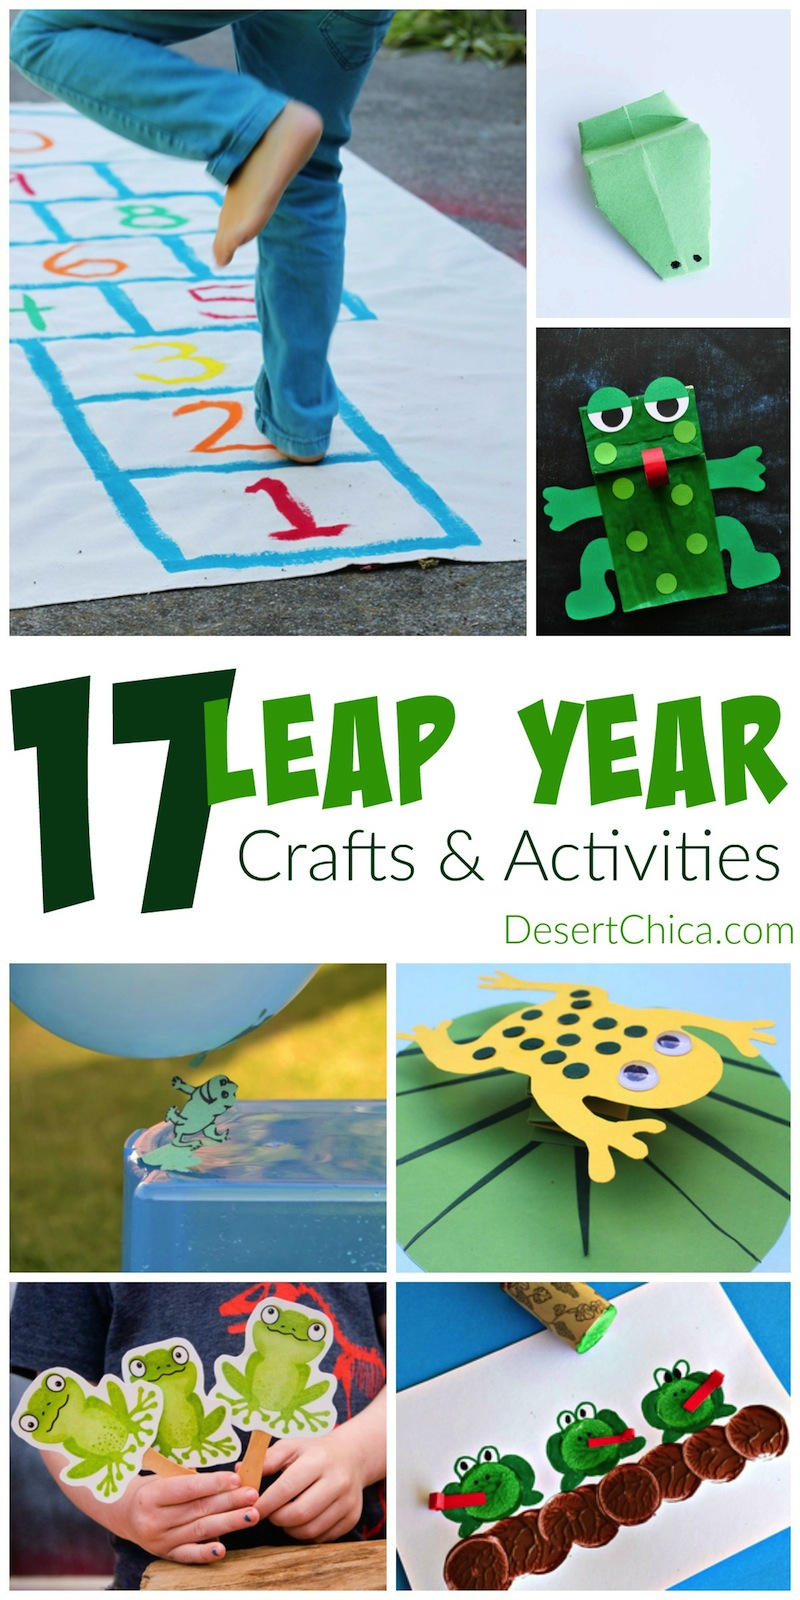 17 leap year crafts and activities